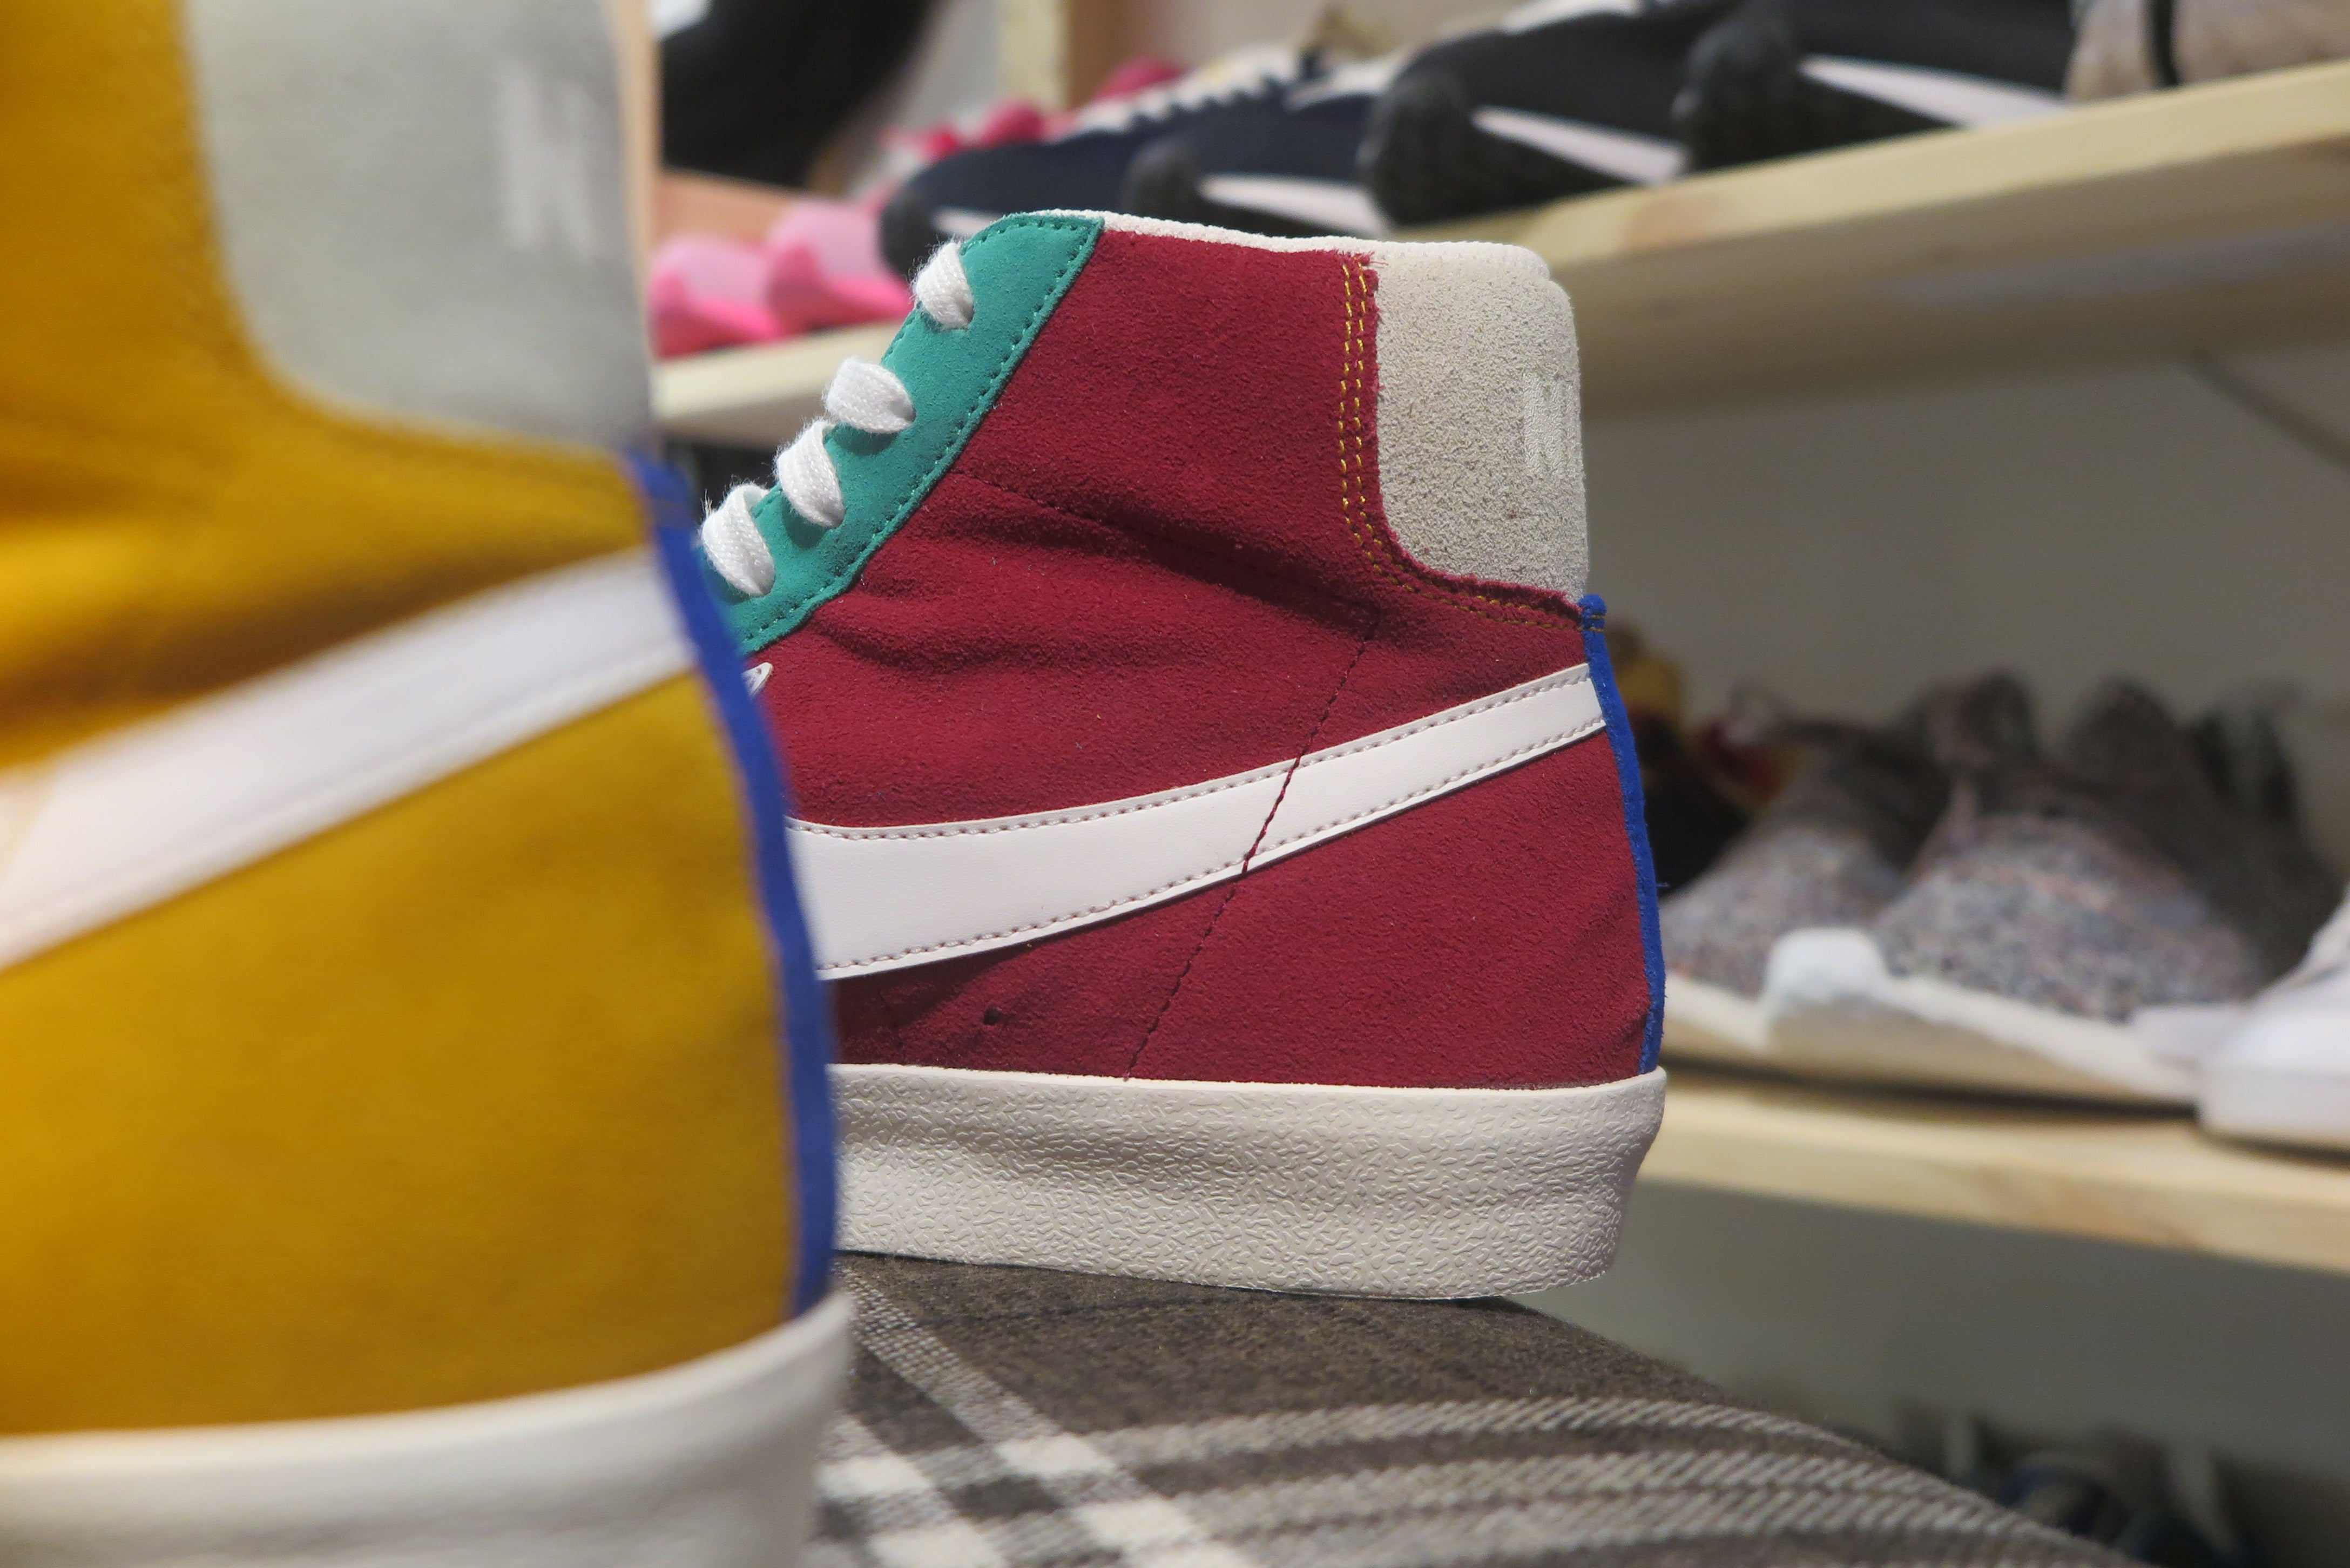 Nike Blazer Mid '77 VNTG Suede - Noble Red/KineticI Green/Jade Aura #CI1167-600-Preorder Item-Navy Selected Shop